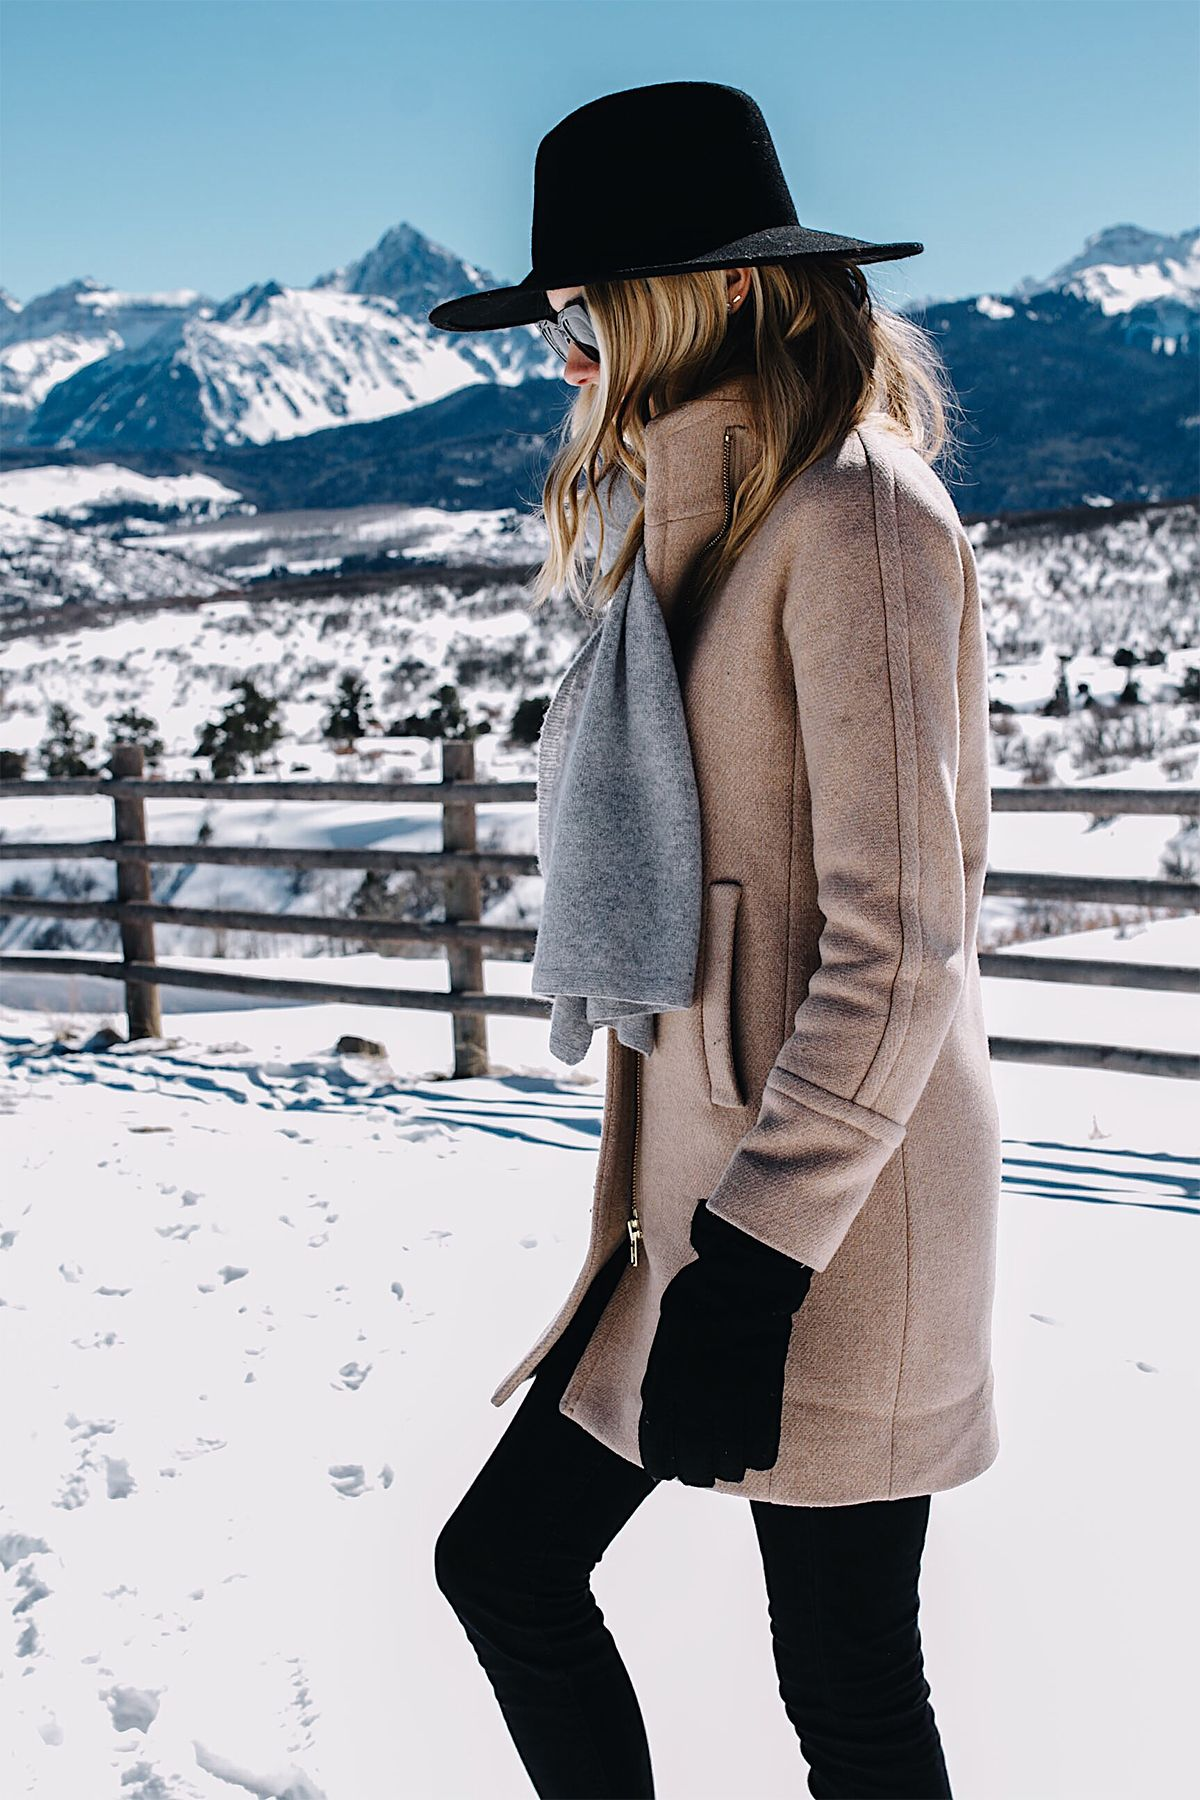 Telluride CO Snow Mountains Blonde Woman Wearing Grey Scarf Camel Coat Black Woo…